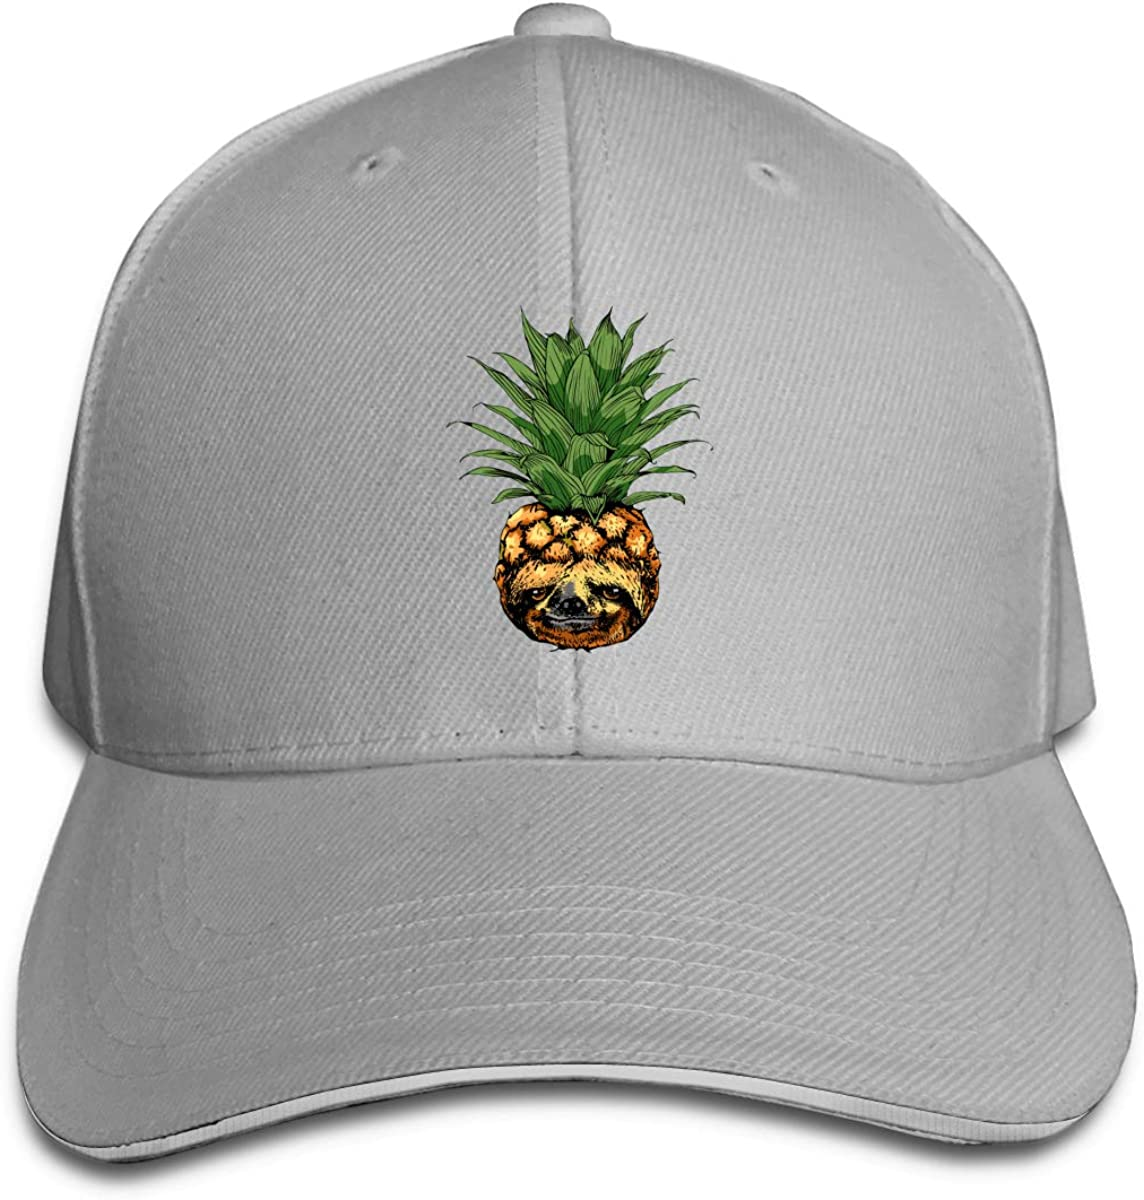 Pineapple Pug Logo Classic Adjustable Cotton Baseball Caps Trucker Driver Hat Outdoor Cap Gray